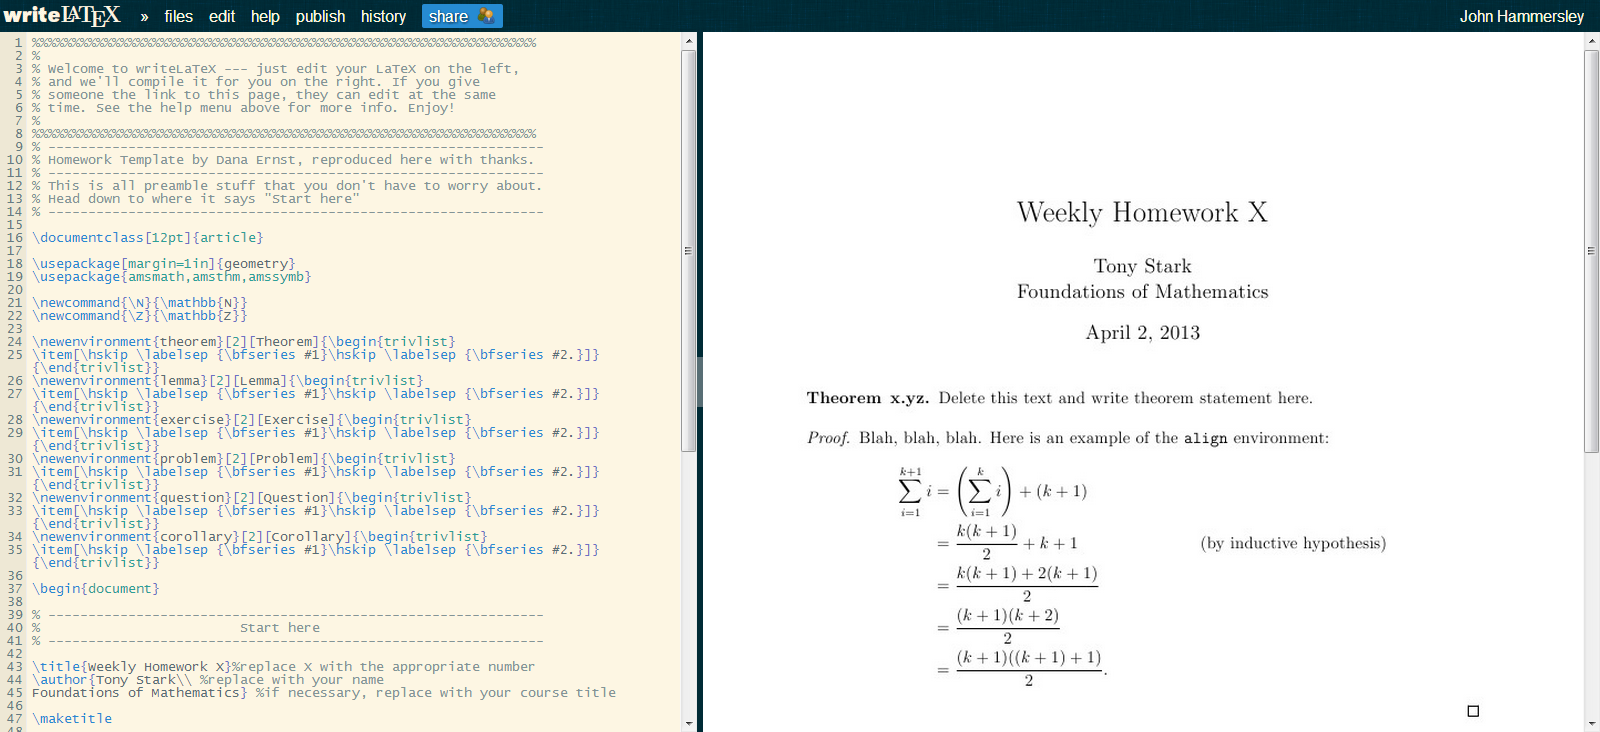 Homework template screenshot